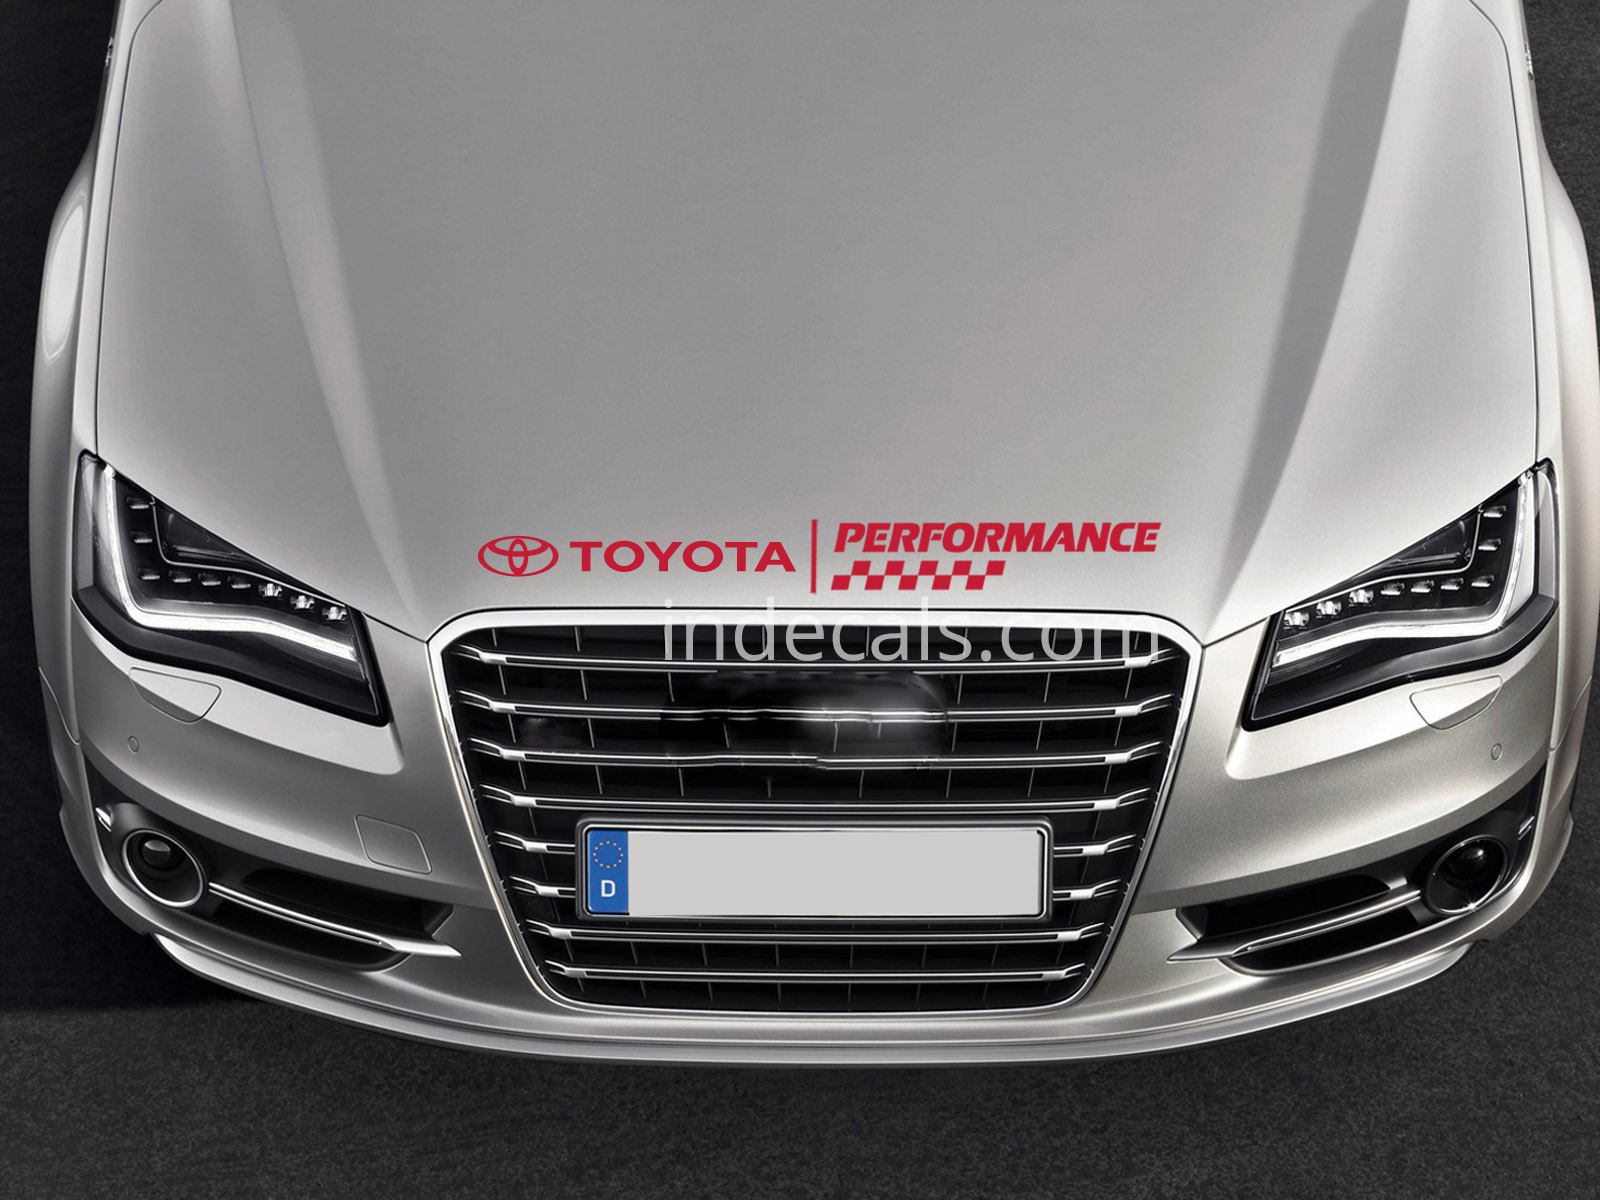 1 x Toyota Performance Sticker for Bonnet - Red